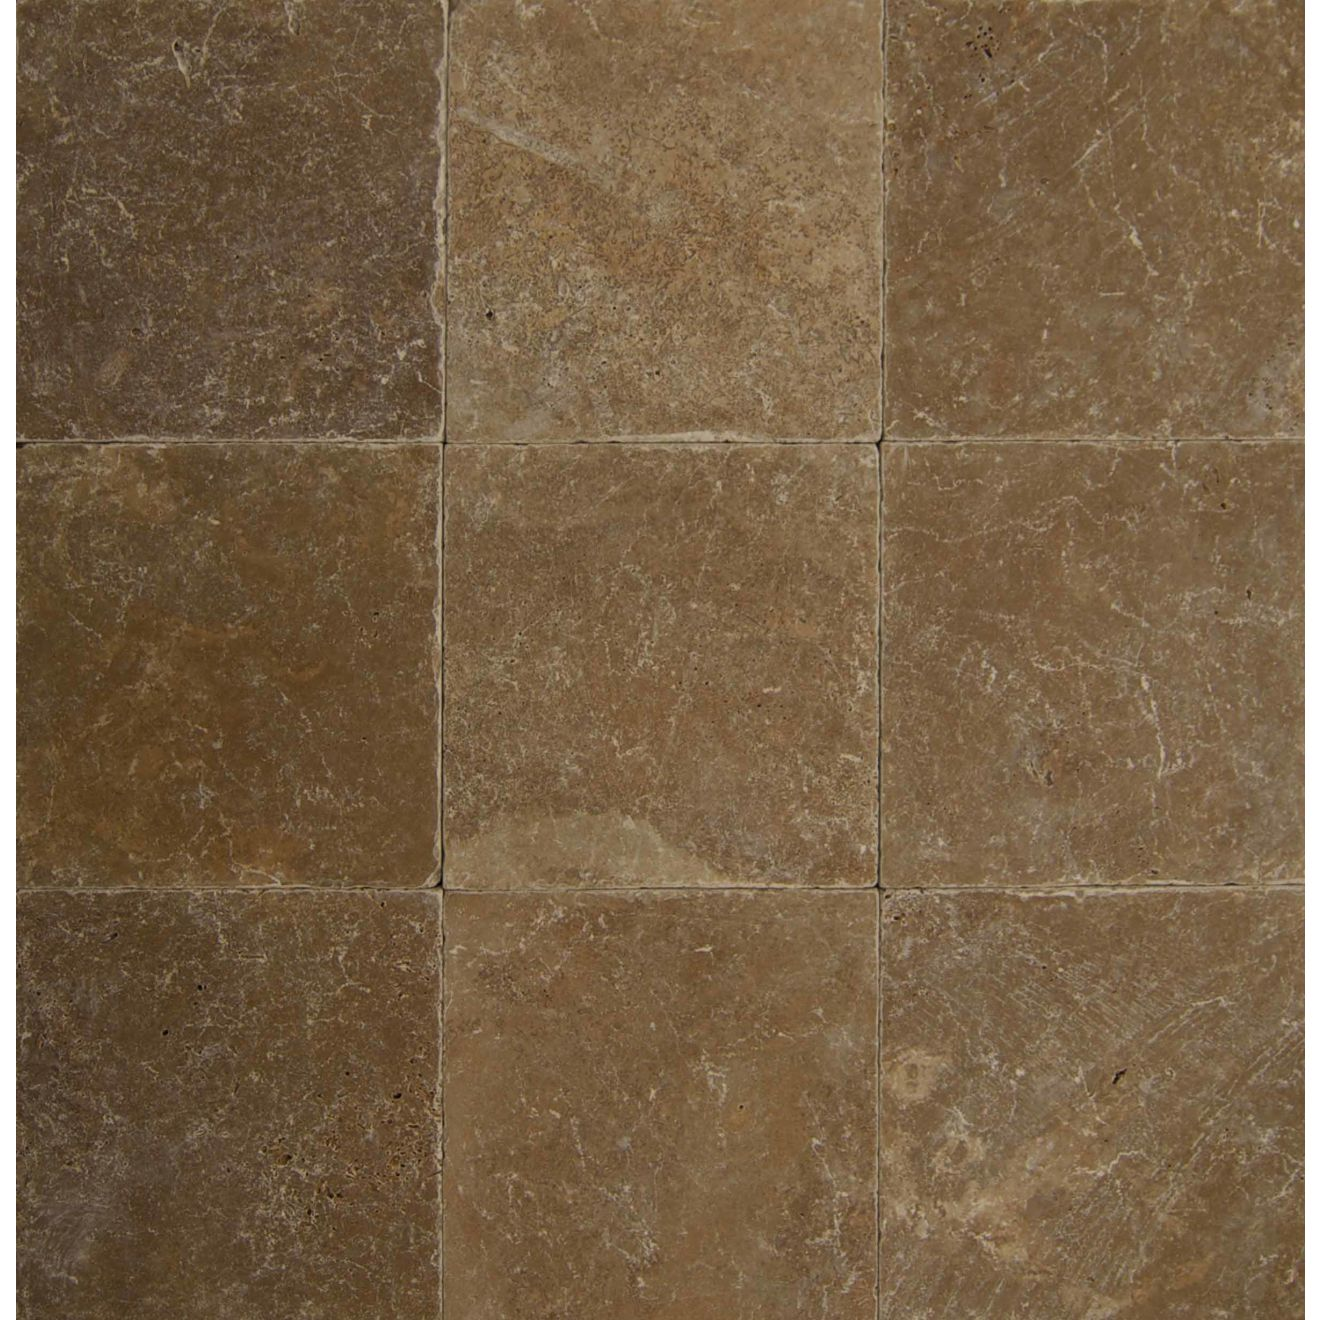 "Cobblestone Brown 16"" x 16"" Paver"